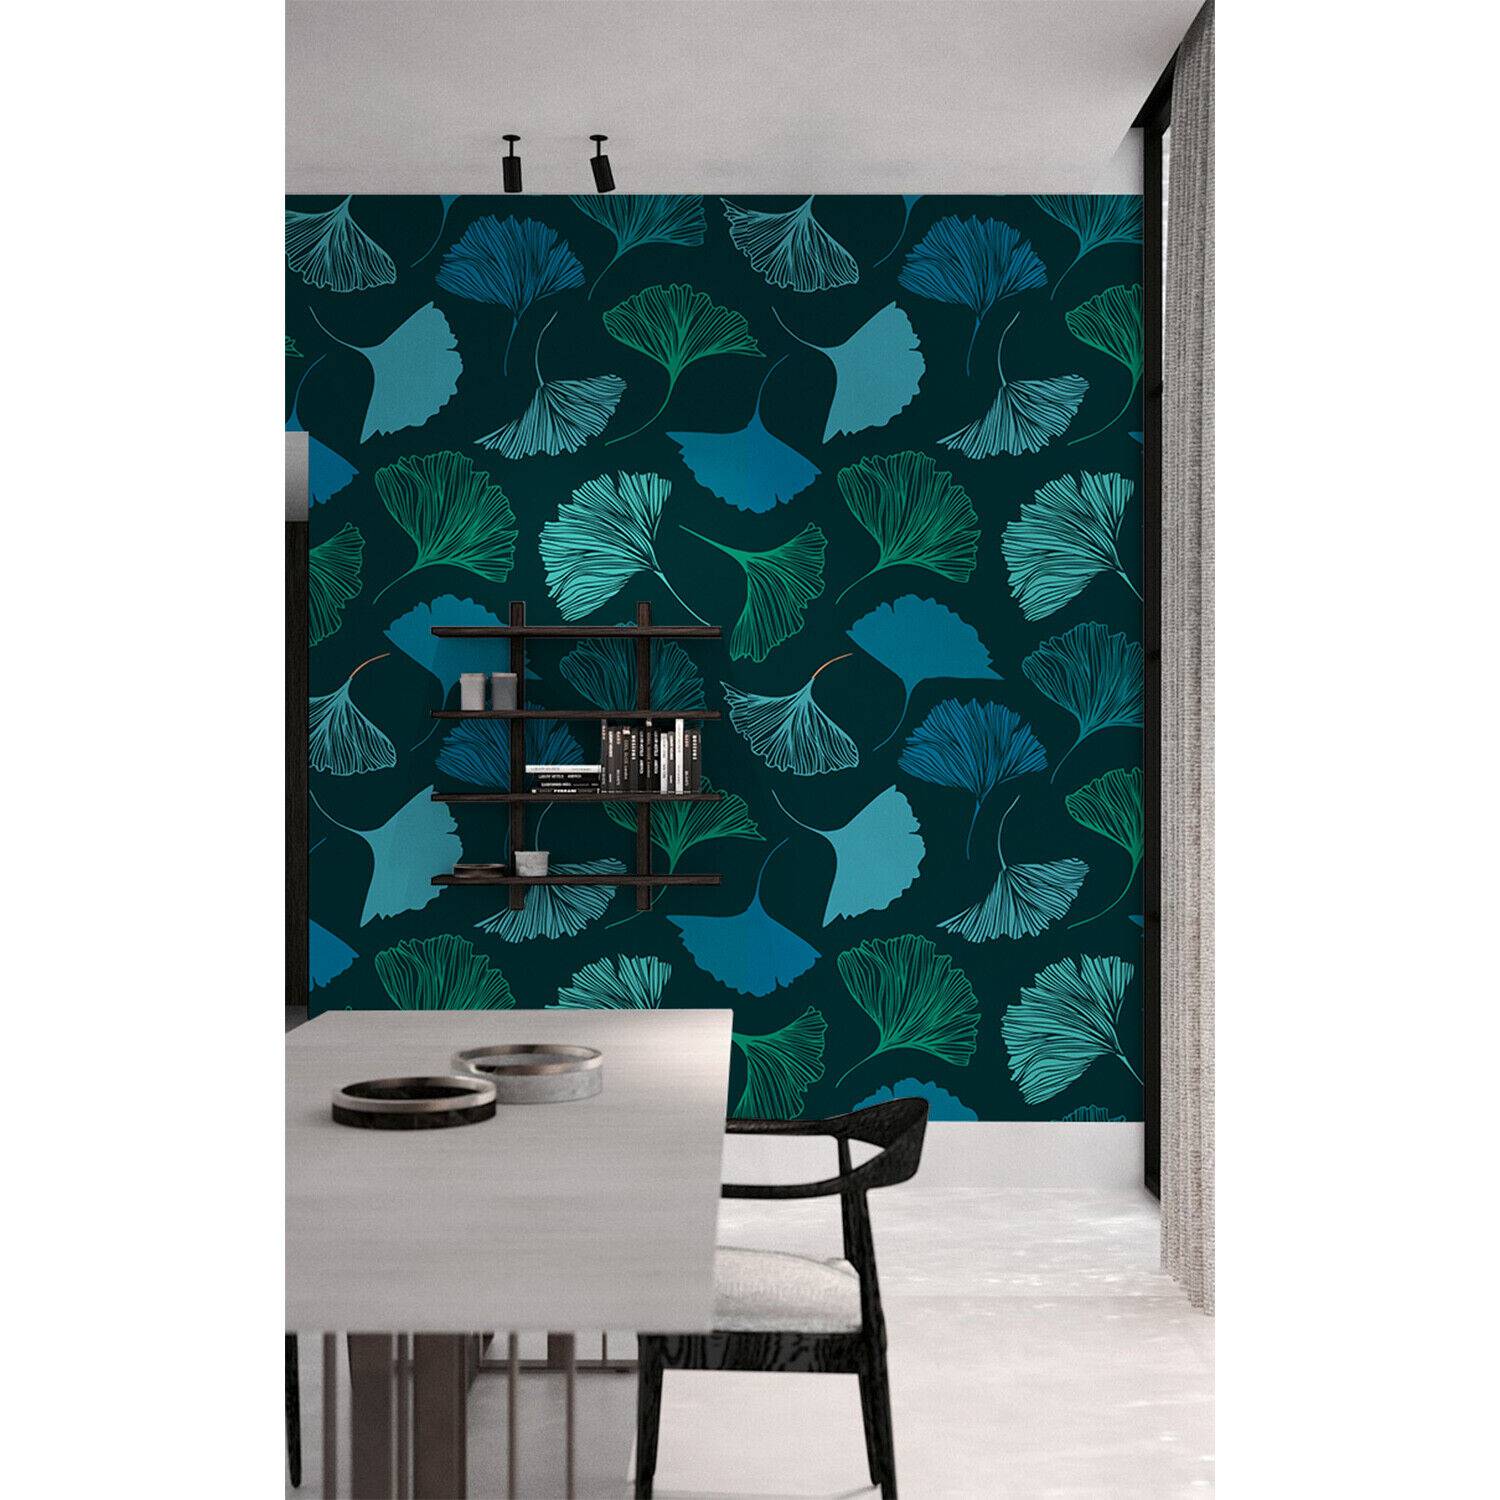 Geometry Leaves Wall Covering Non-Woven wallpaper Traditional Home Mural Decor